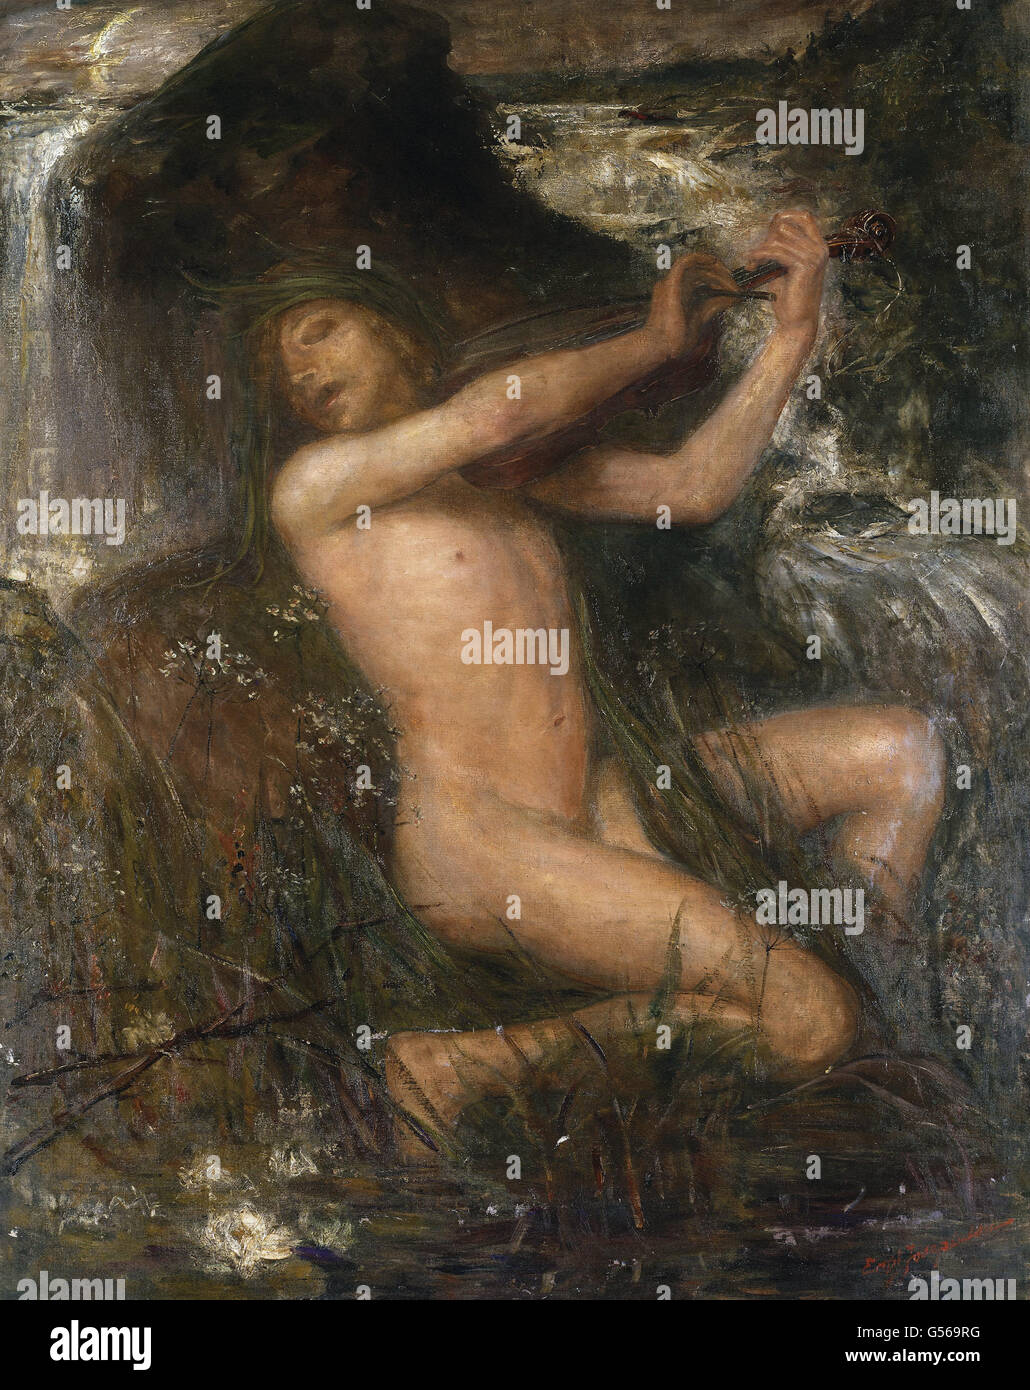 Ernst Josephsson - The Water Sprite - Stock Image